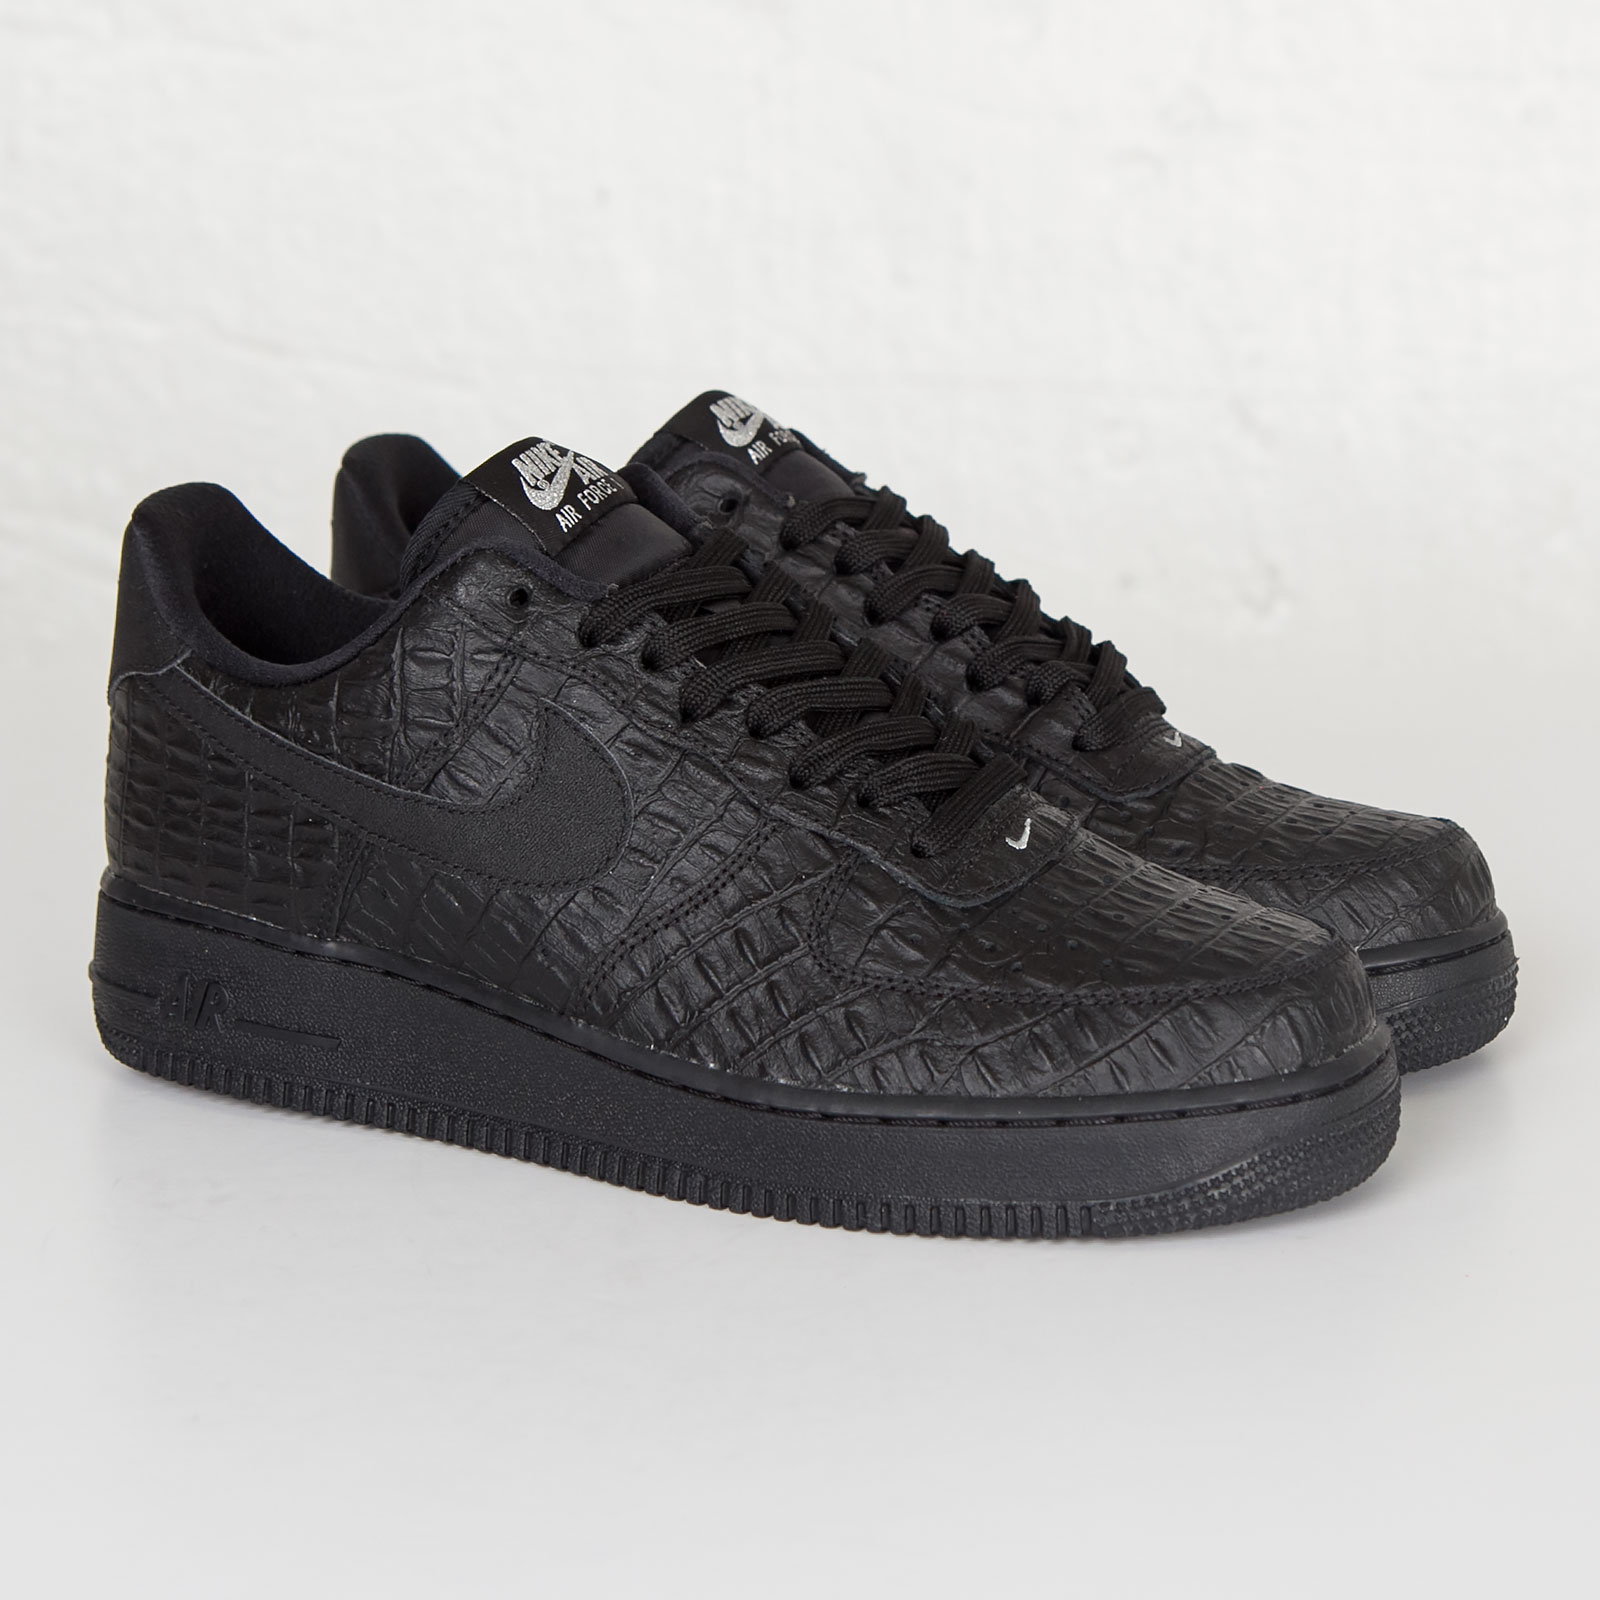 Nike Air Force 1 07 LV8 718152 007 Sneakersnstuff